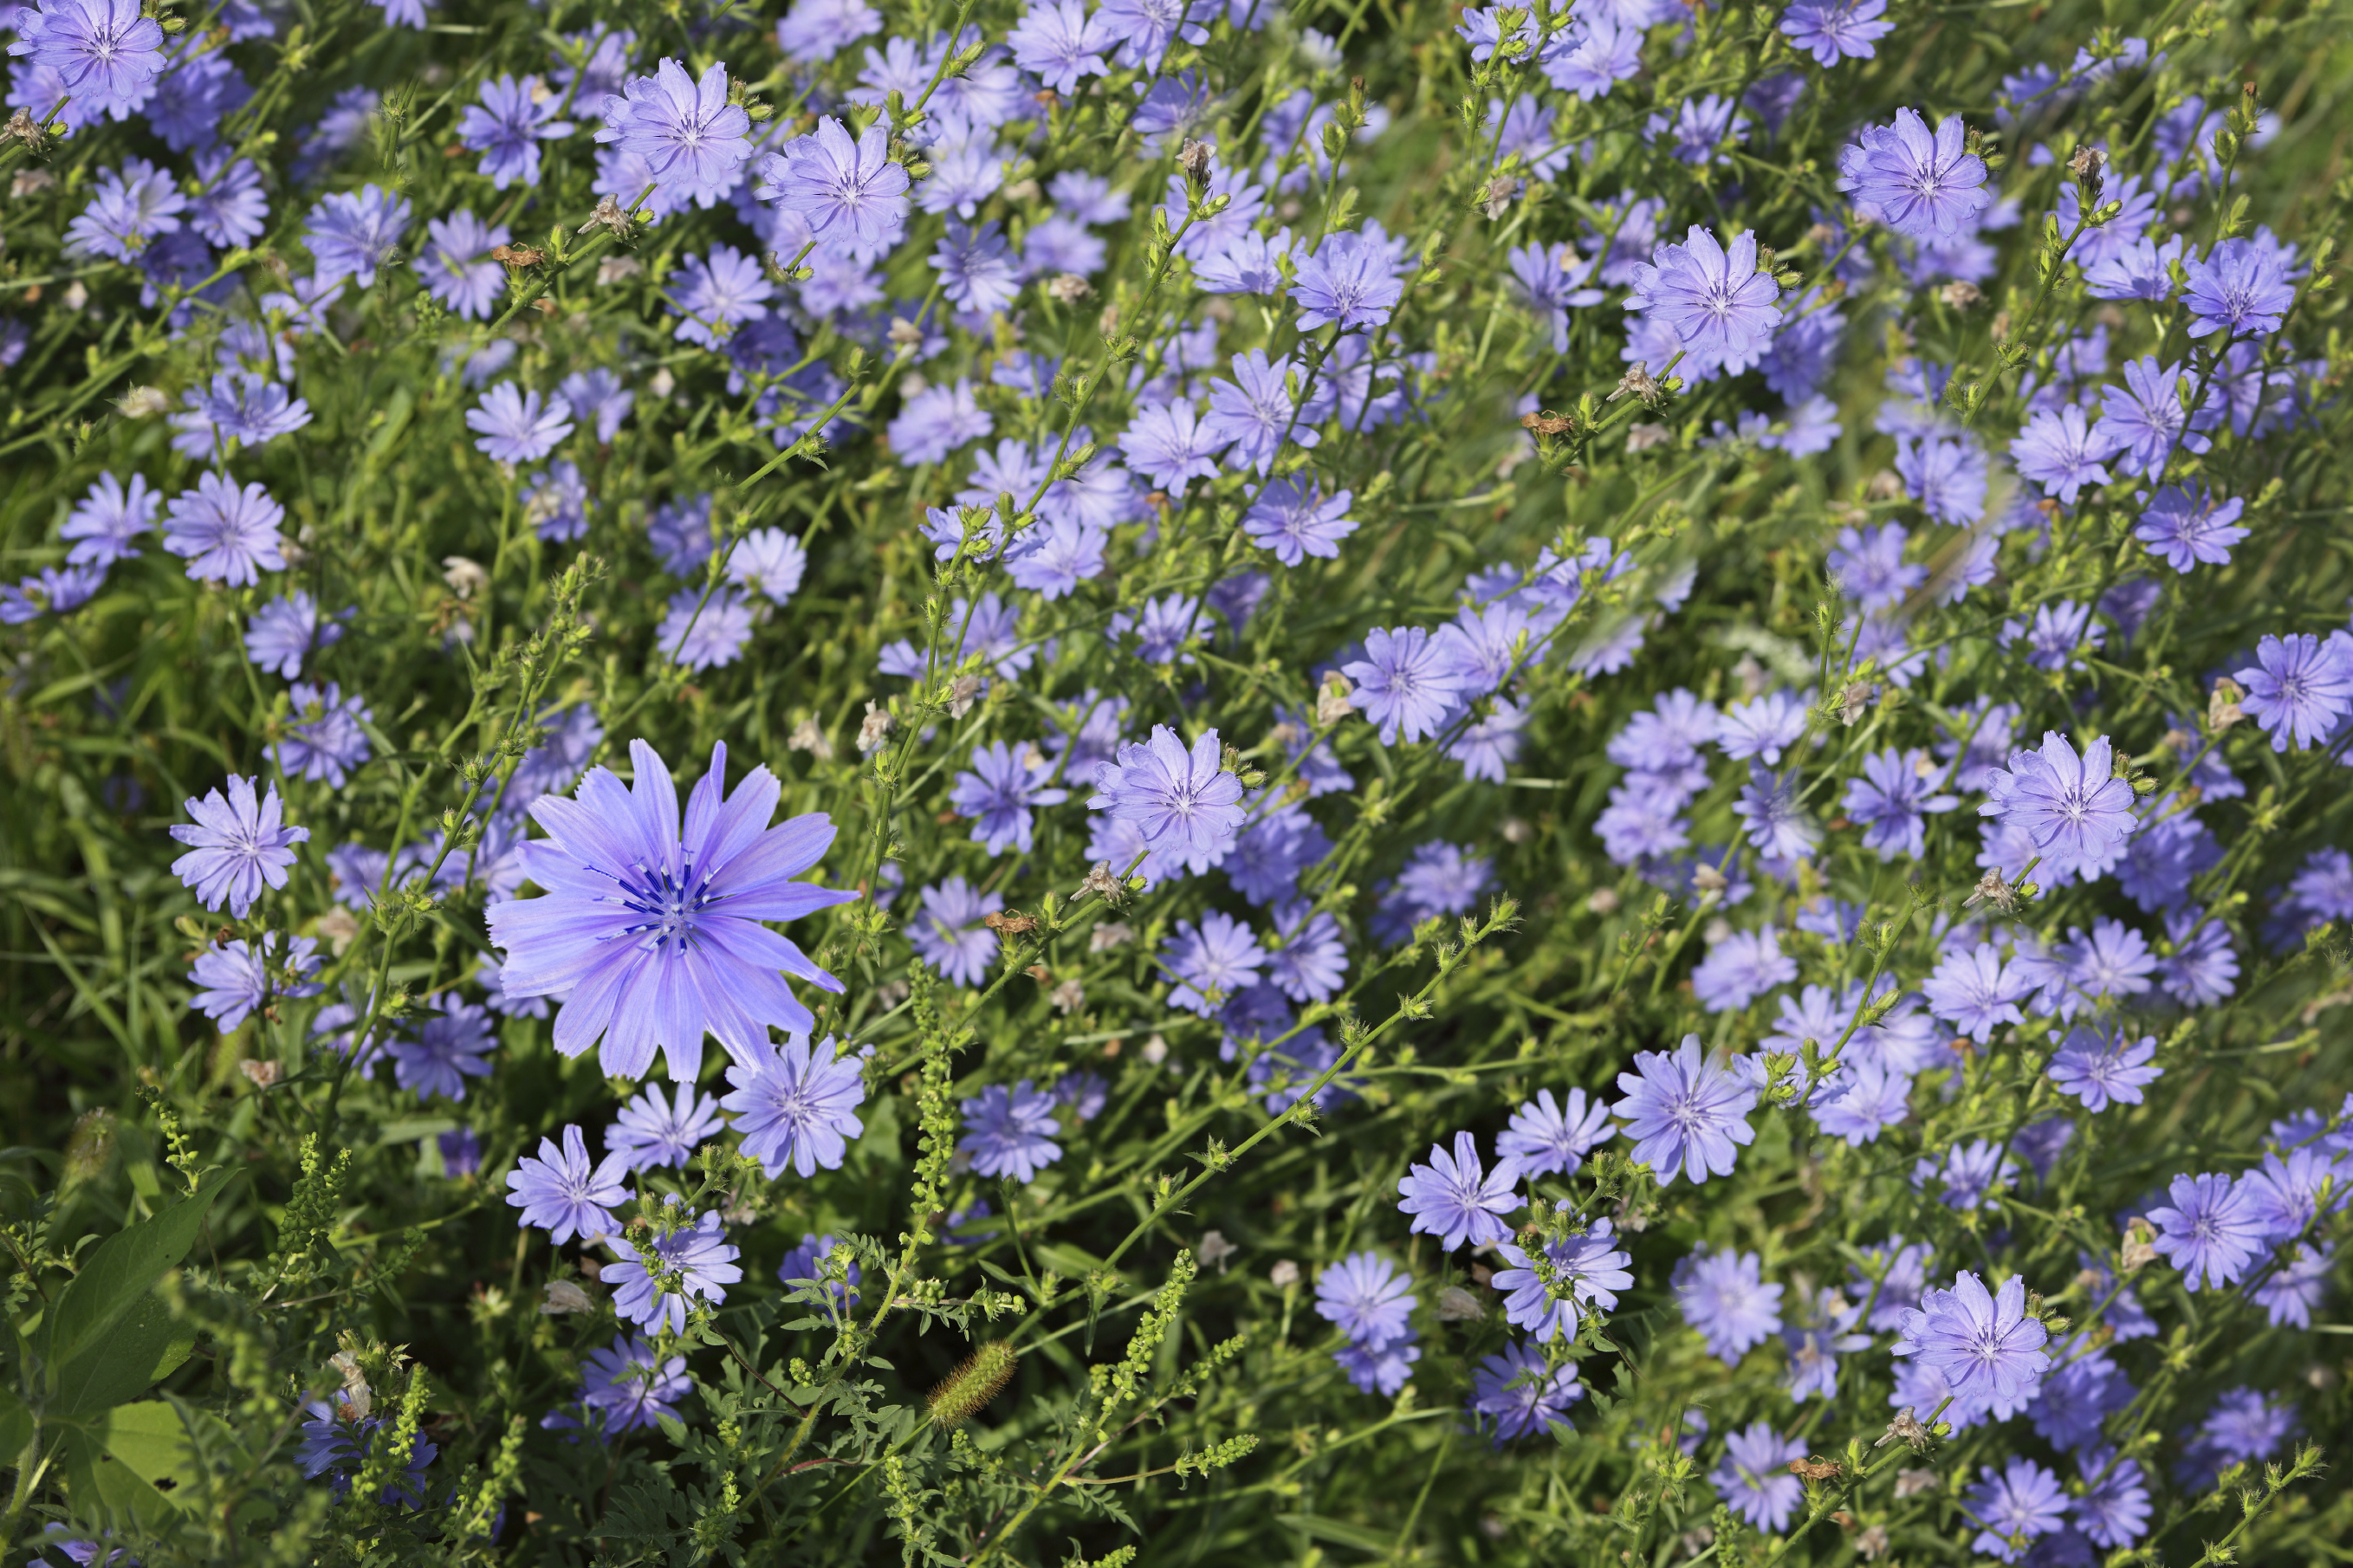 Blue cichorium chicory wild flowers on the field